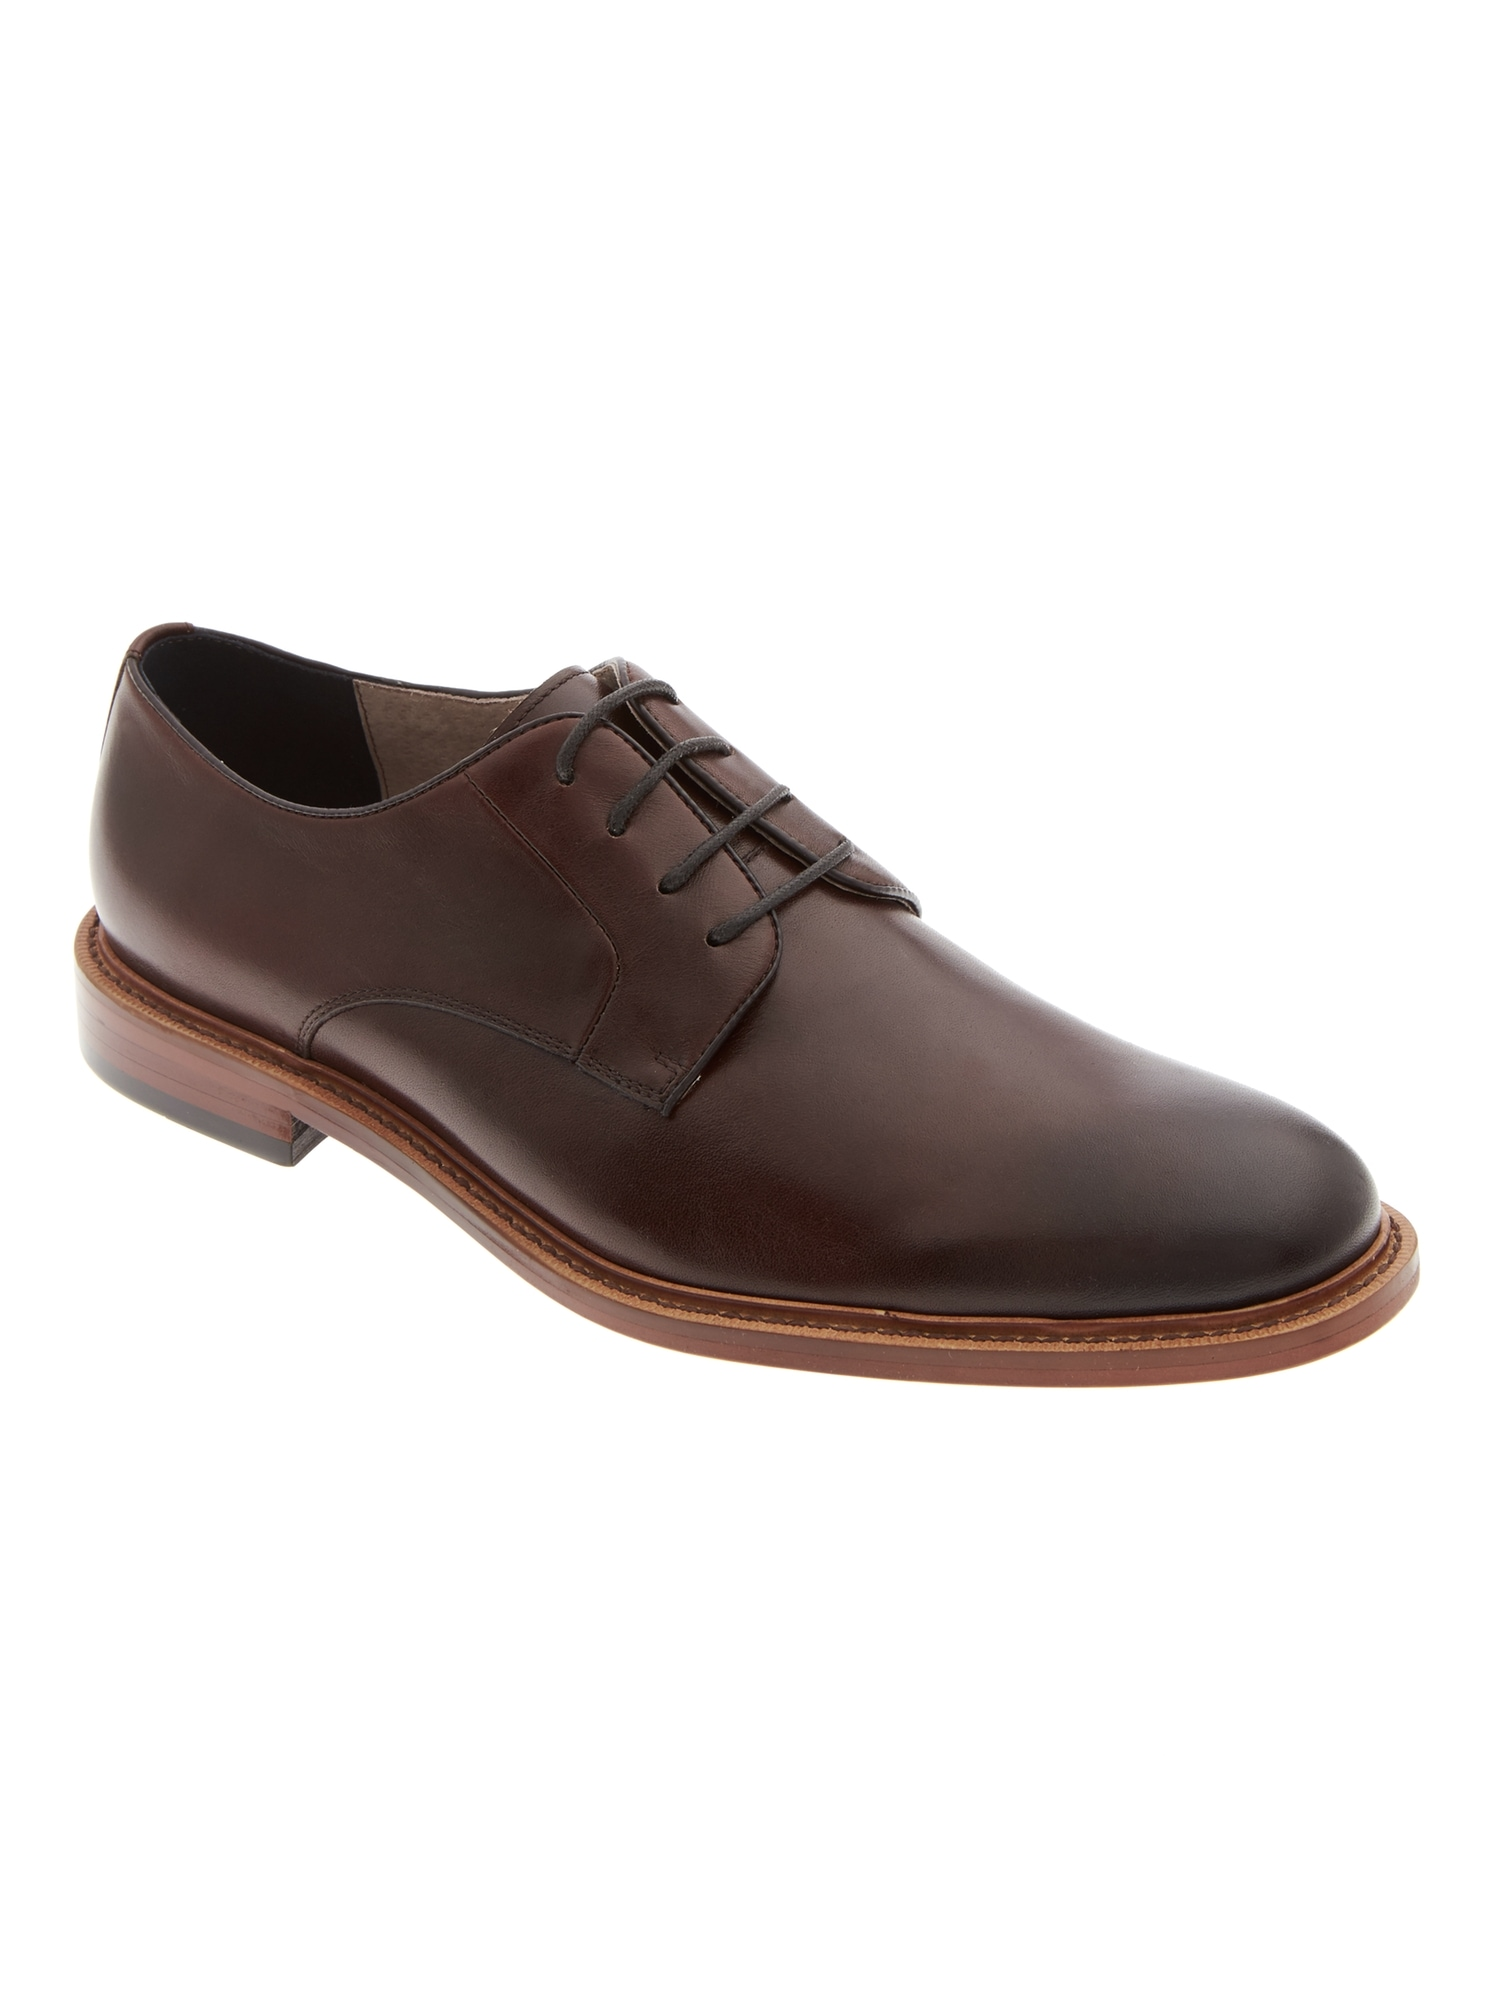 Jennings Italian Leather Oxford